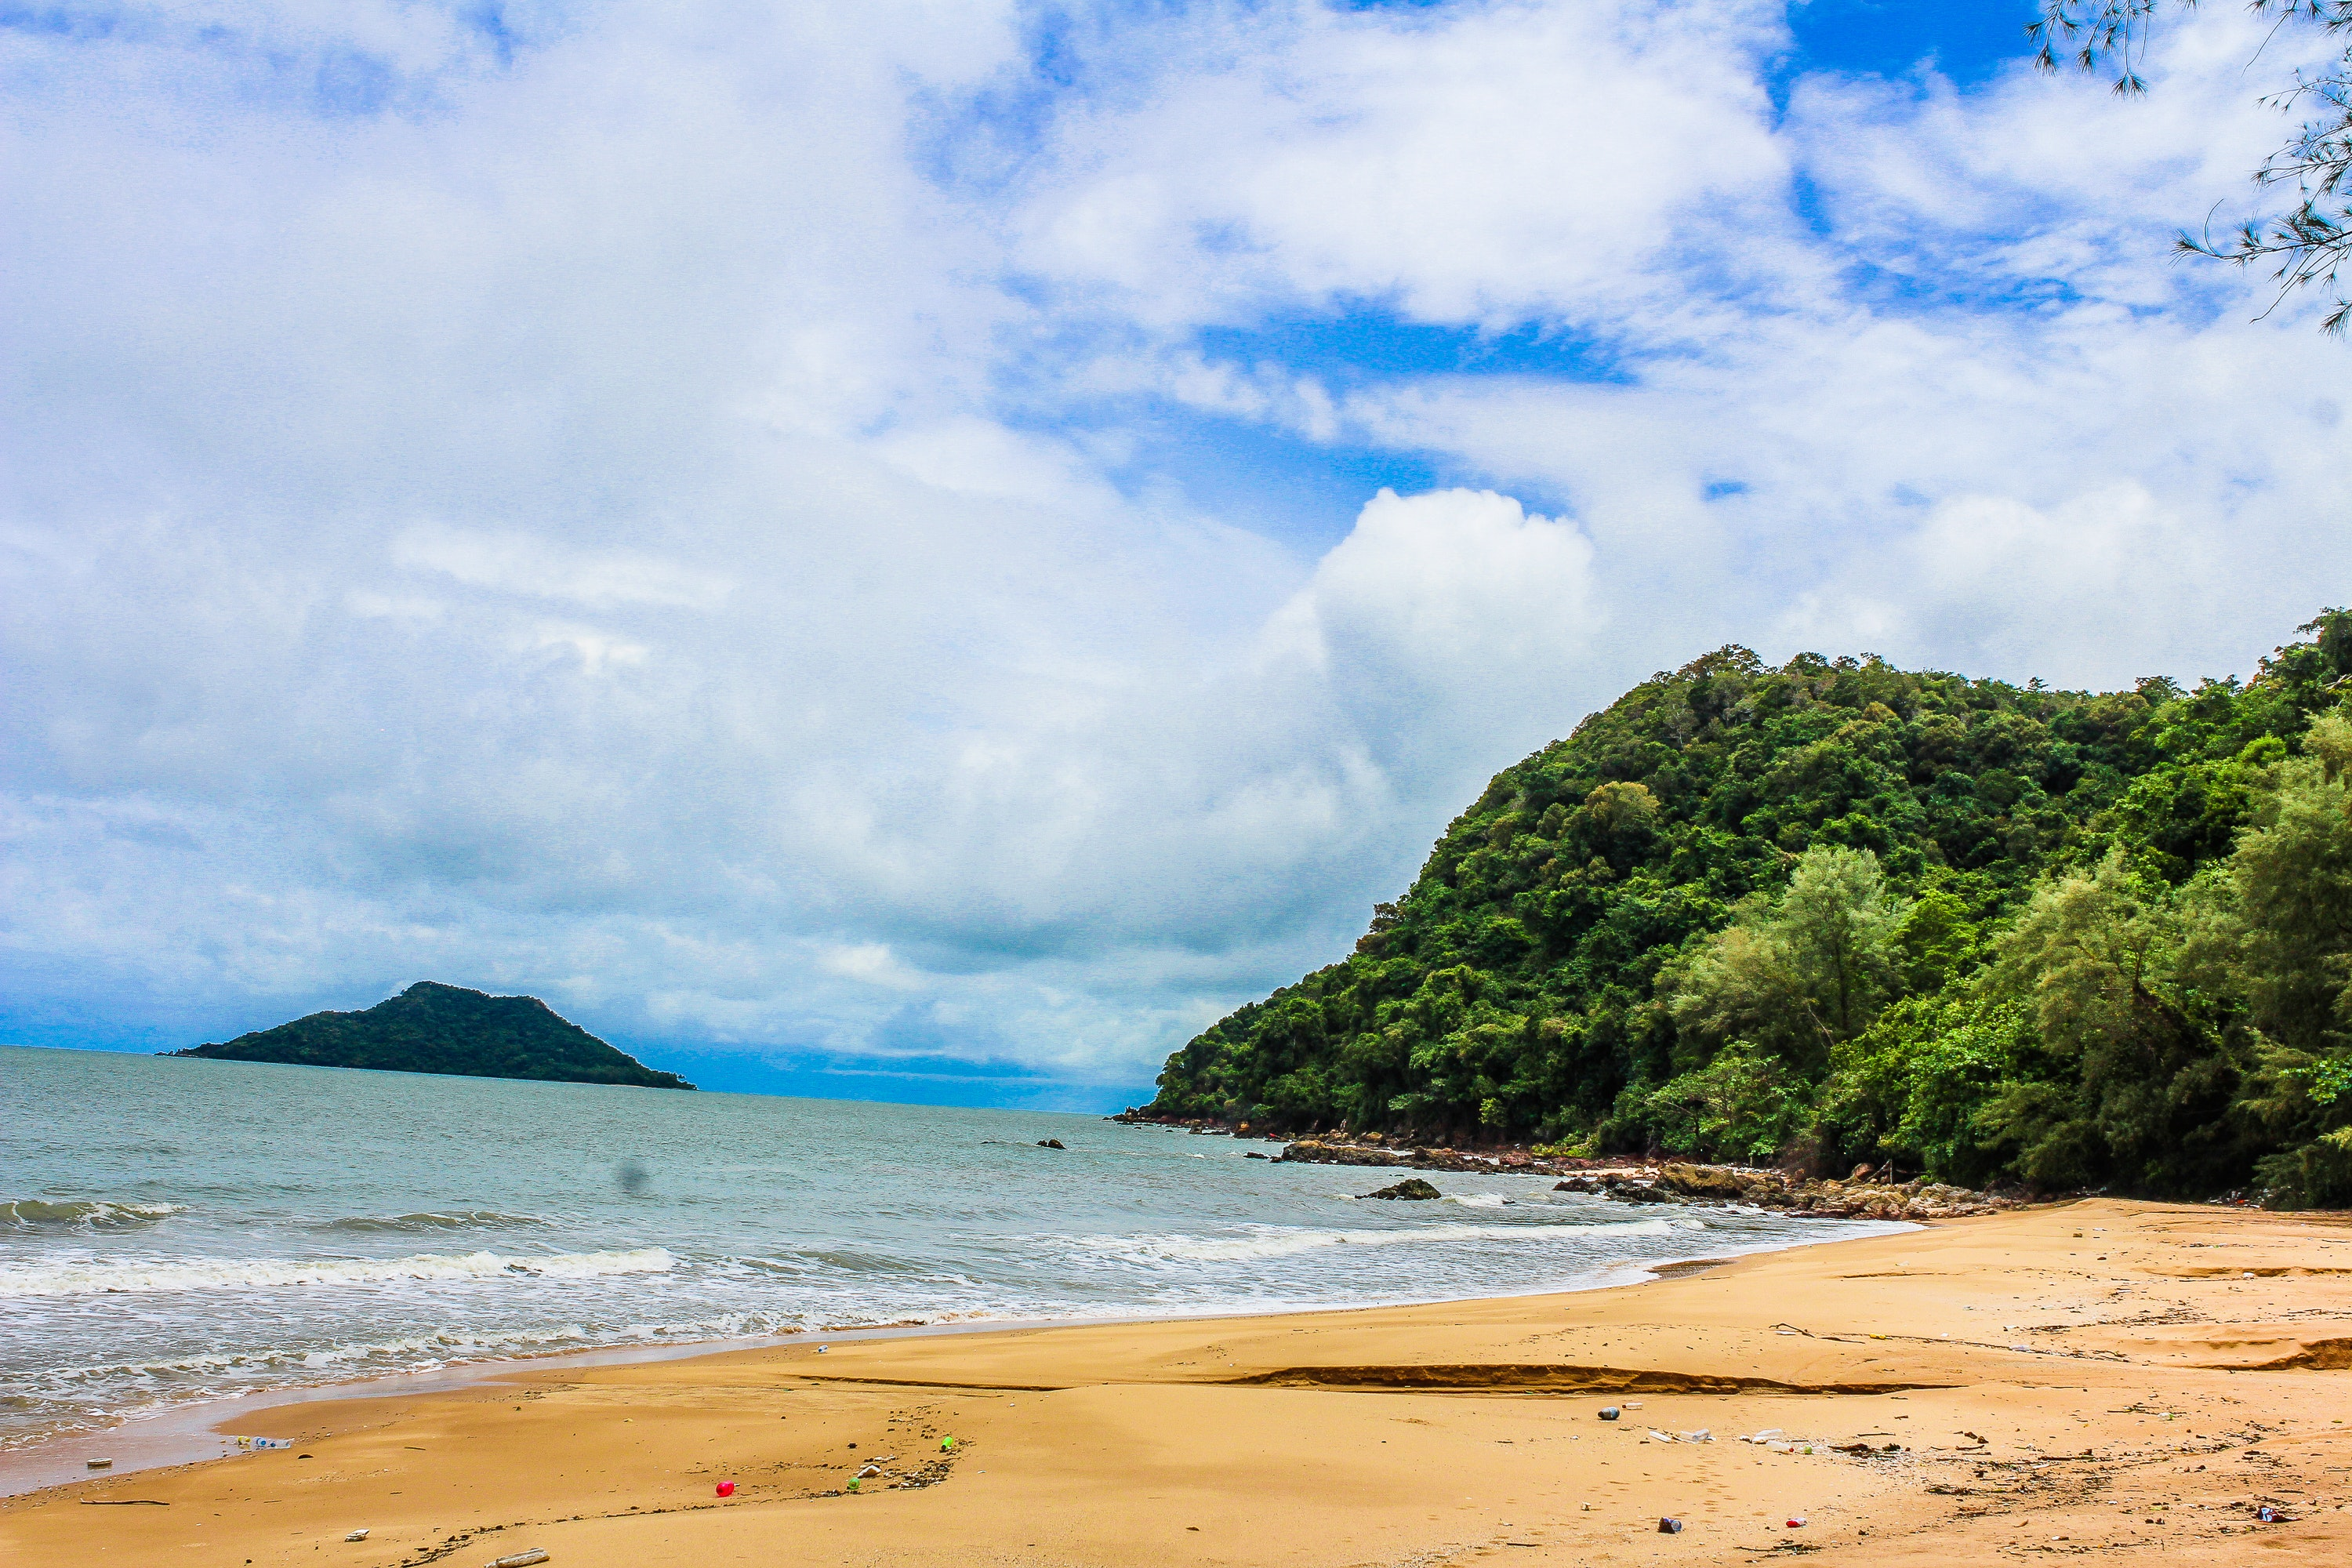 Green Leaf Trees Beside Body of Water, Beach, Scenic, Water, View, HQ Photo